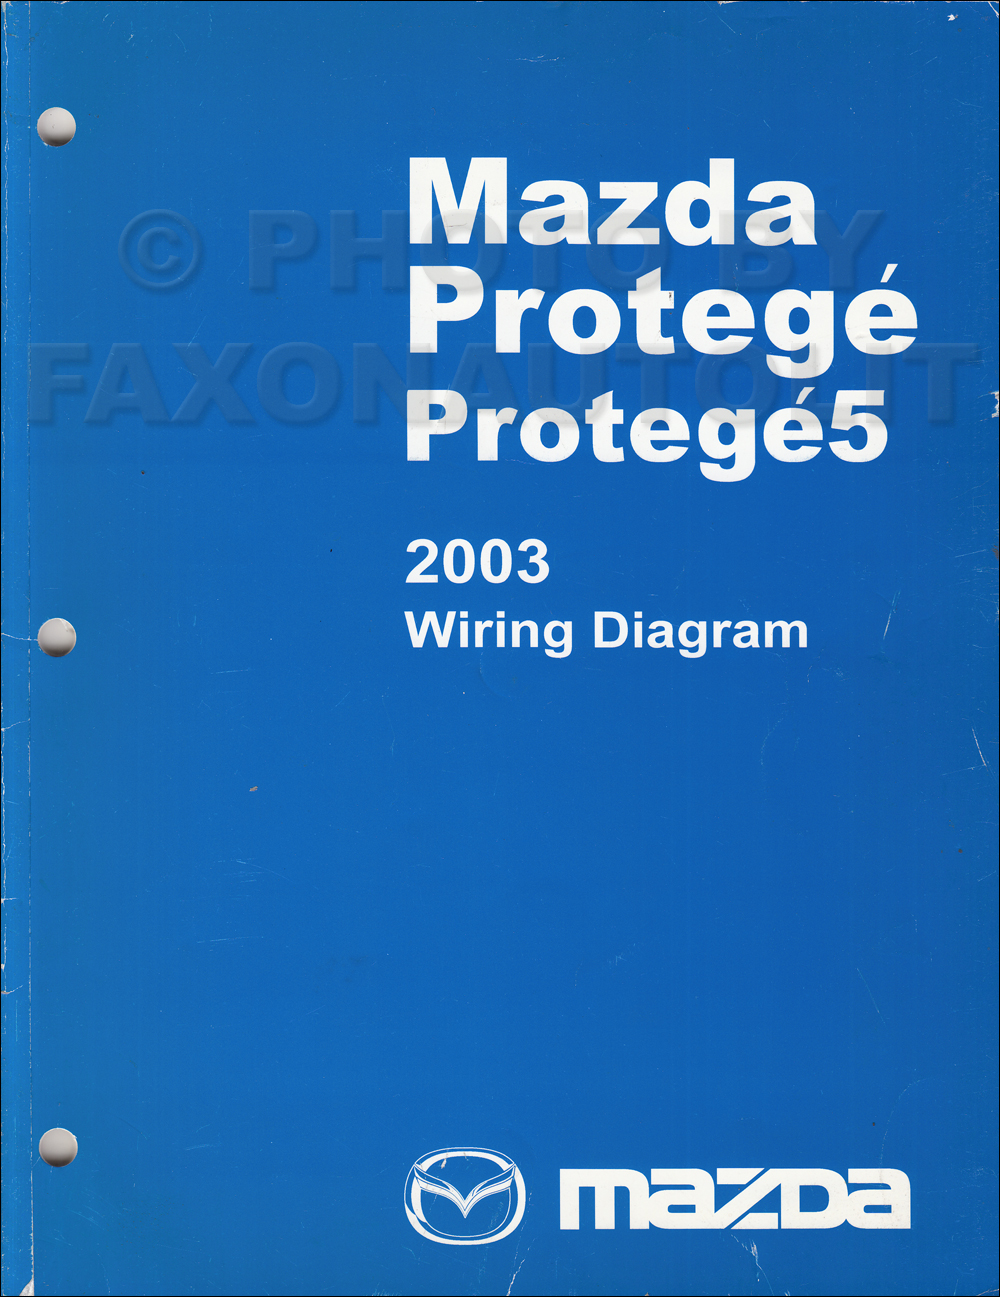 hight resolution of 2003 mazda protege and protege5 wiring diagram manual original mazda 5 mazda protege wiring